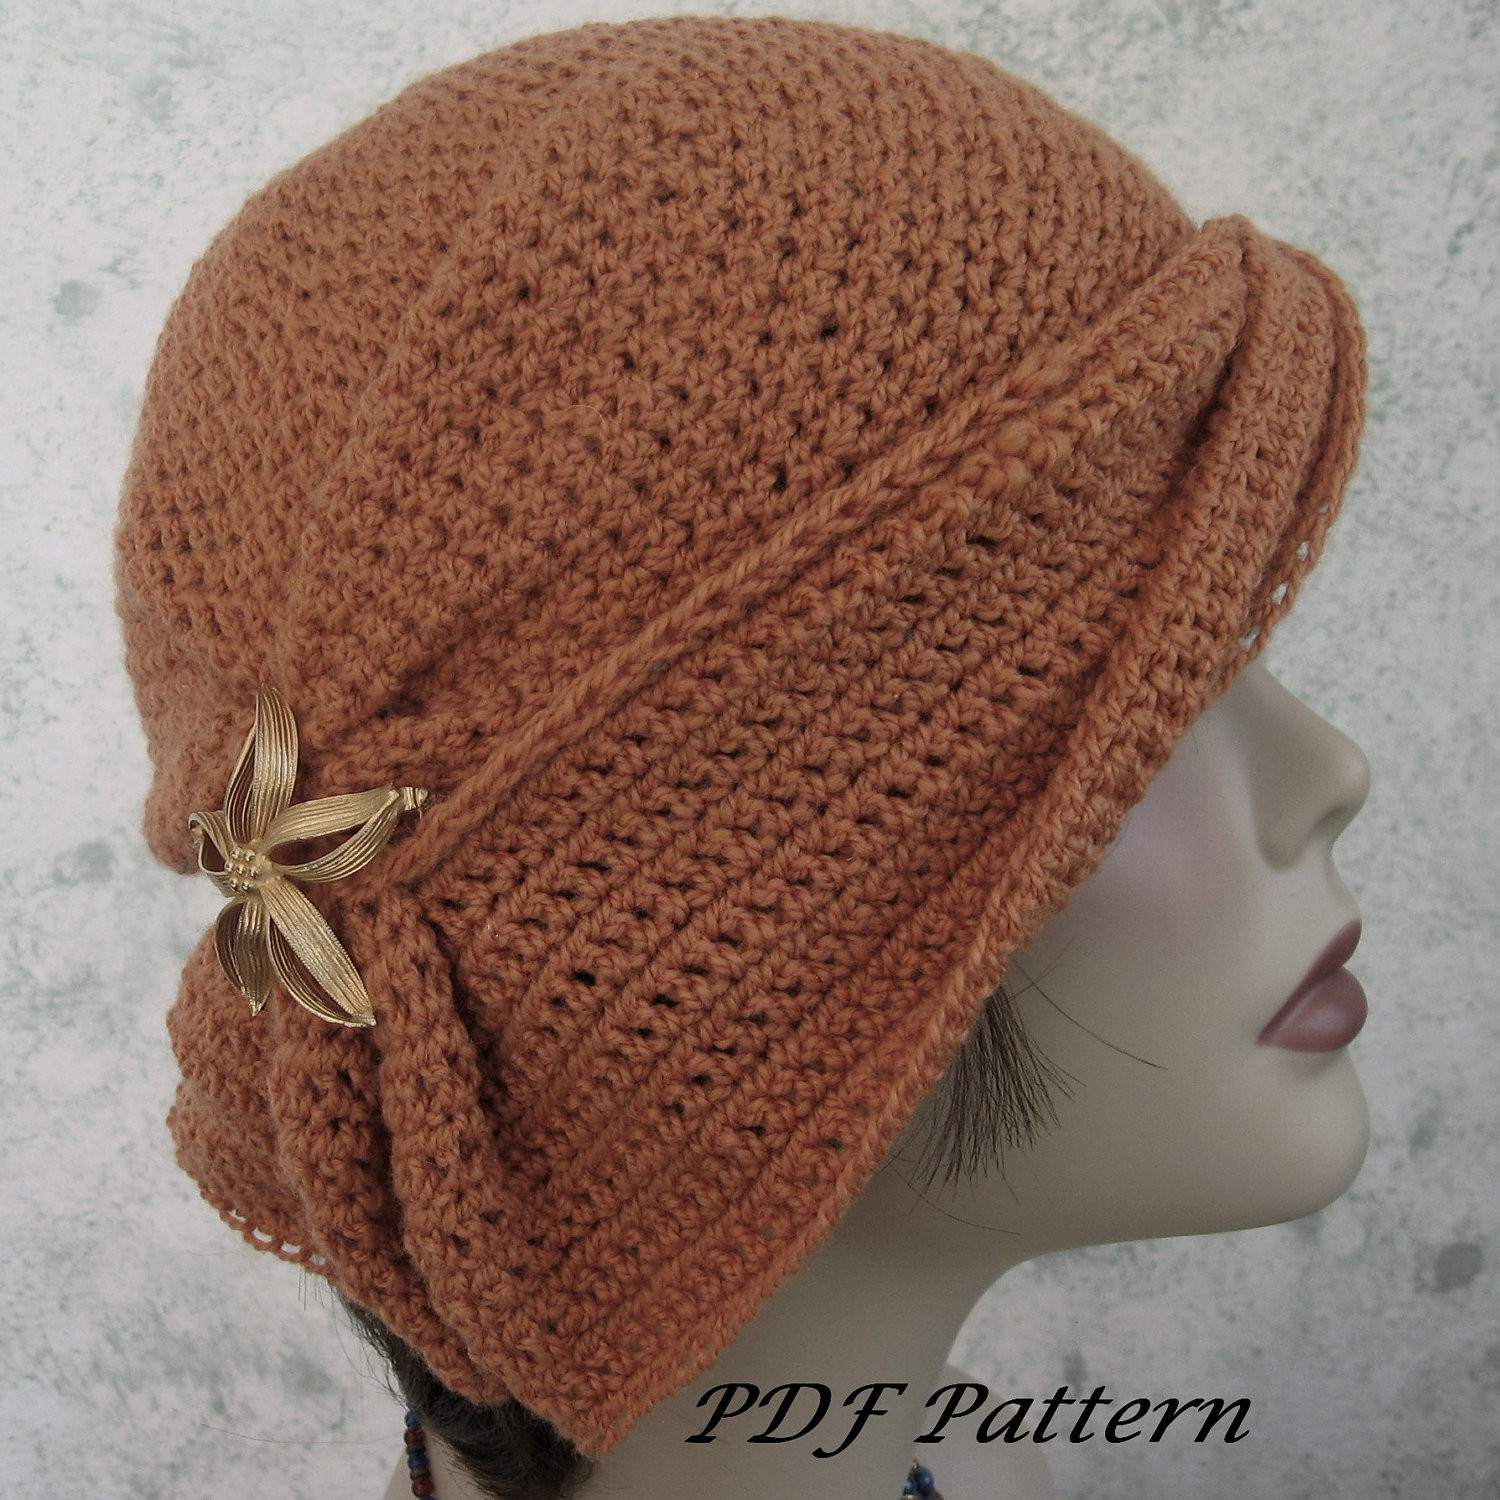 Elegant Free Crochet Hat Patterns You Have Been Looking for Free Crochet Beanie Hat Pattern Of Amazing 48 Images Free Crochet Beanie Hat Pattern